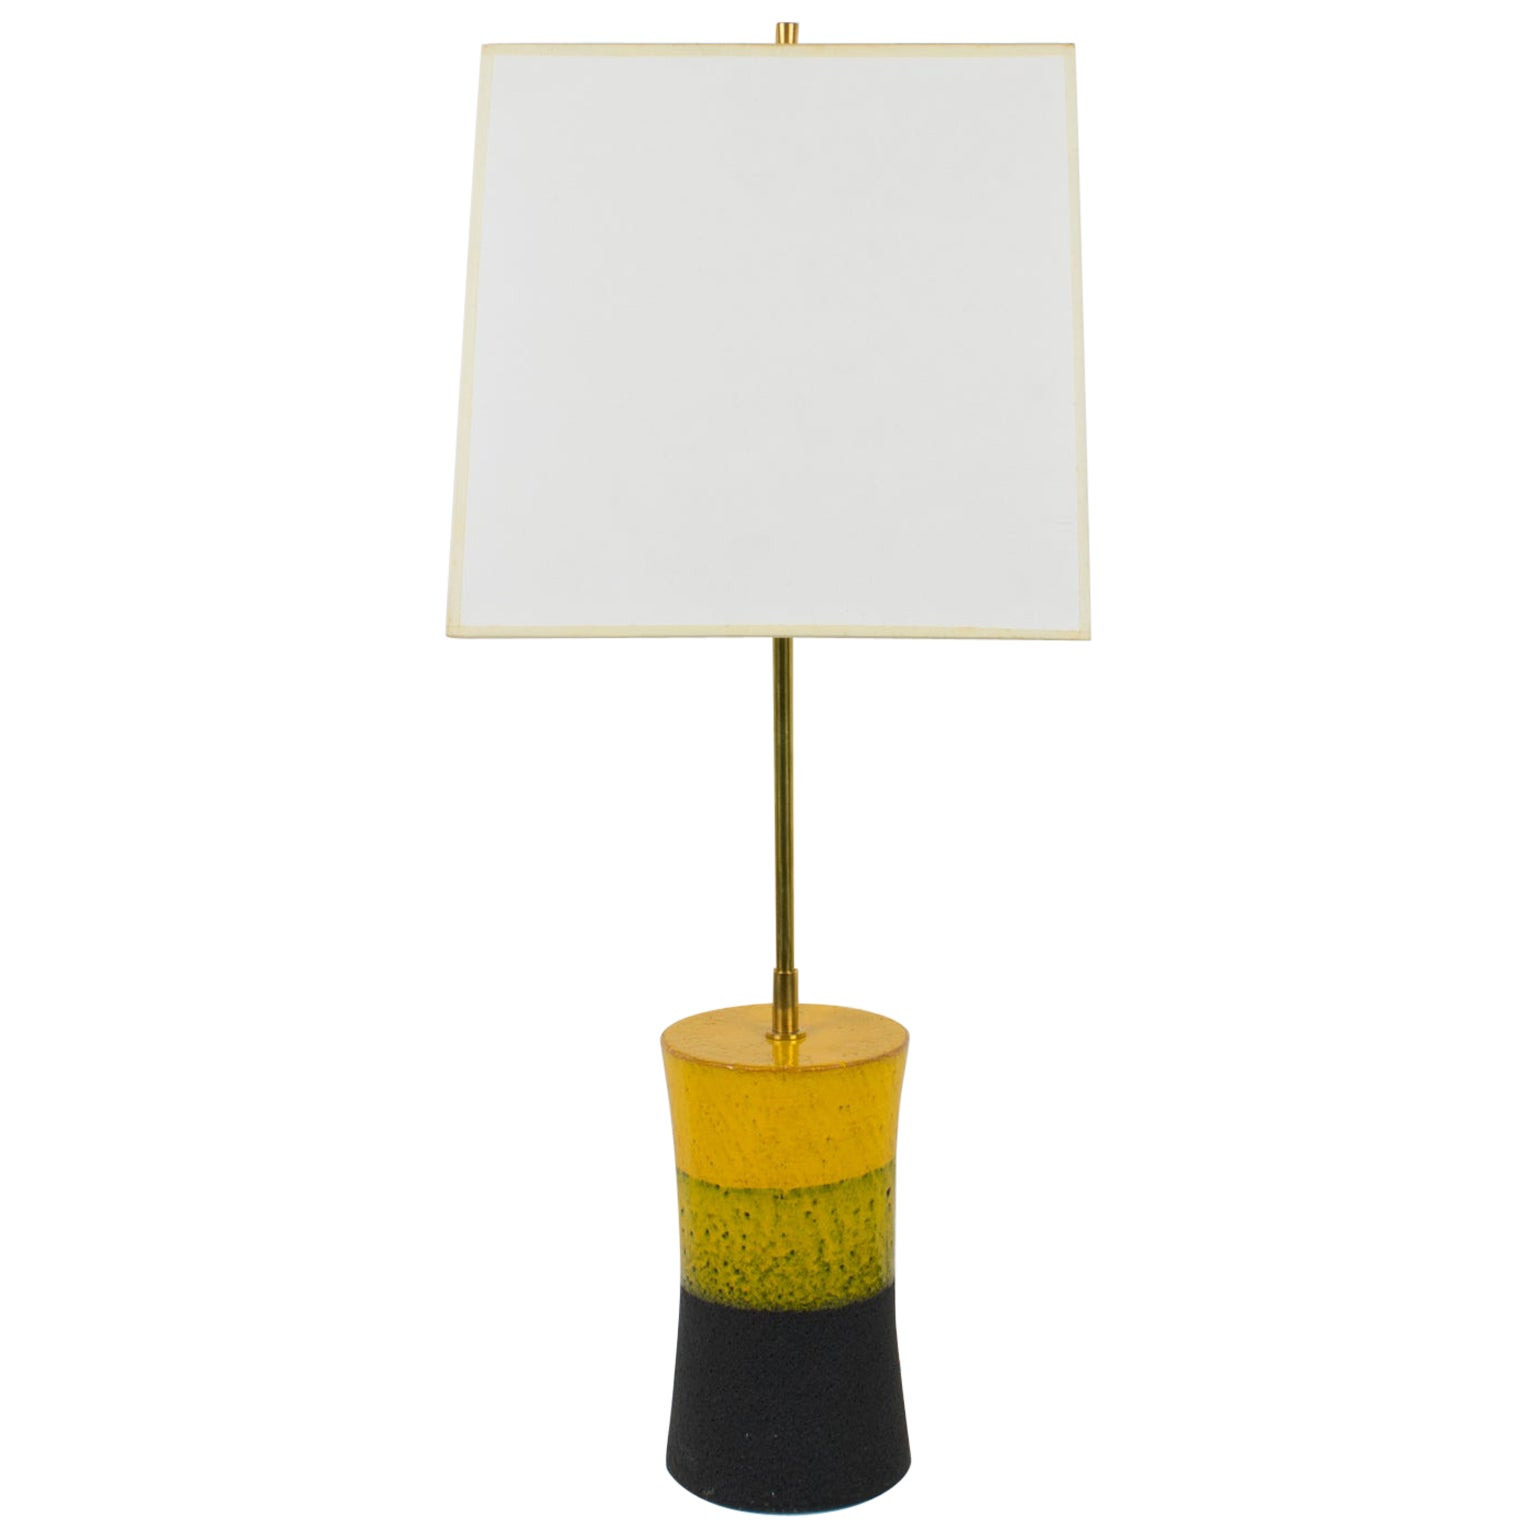 Aldo Londi for Bitossi Italy 1960s Ceramic Table Lamp